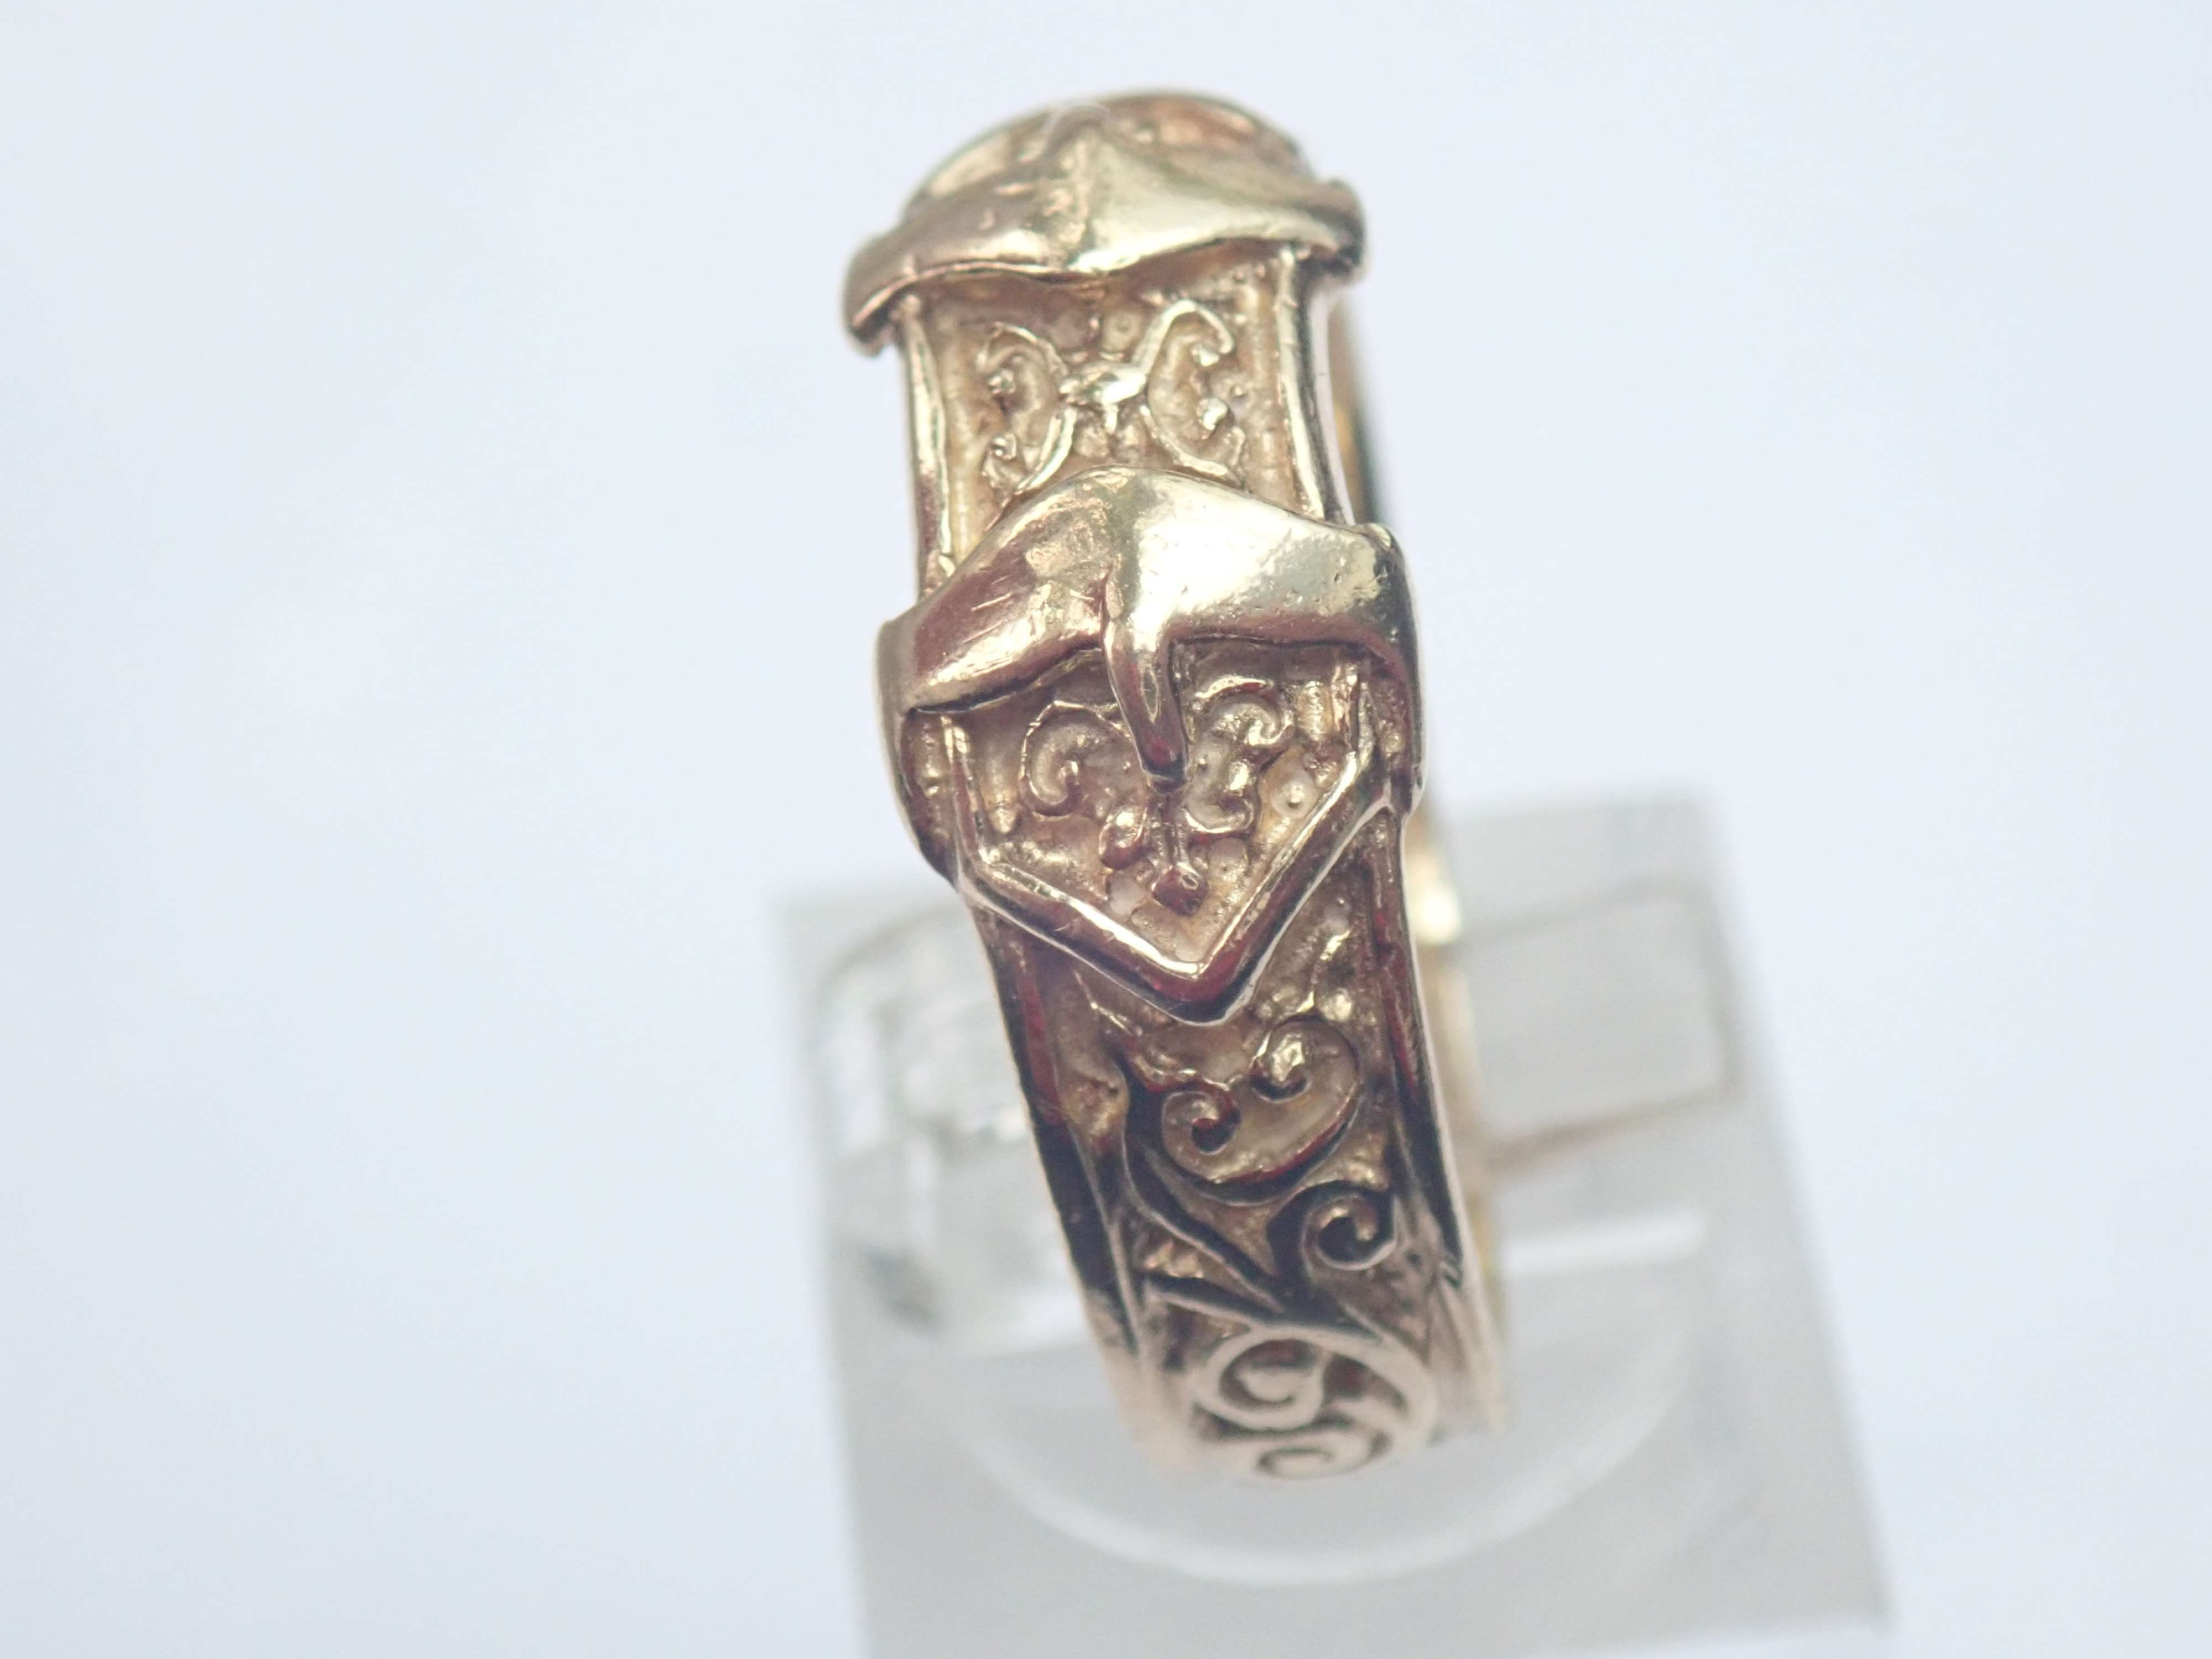 AZZ00610 - Vintage!! 9ct Gold Double Buckle Ring 6.3gms Size U1/2 #145